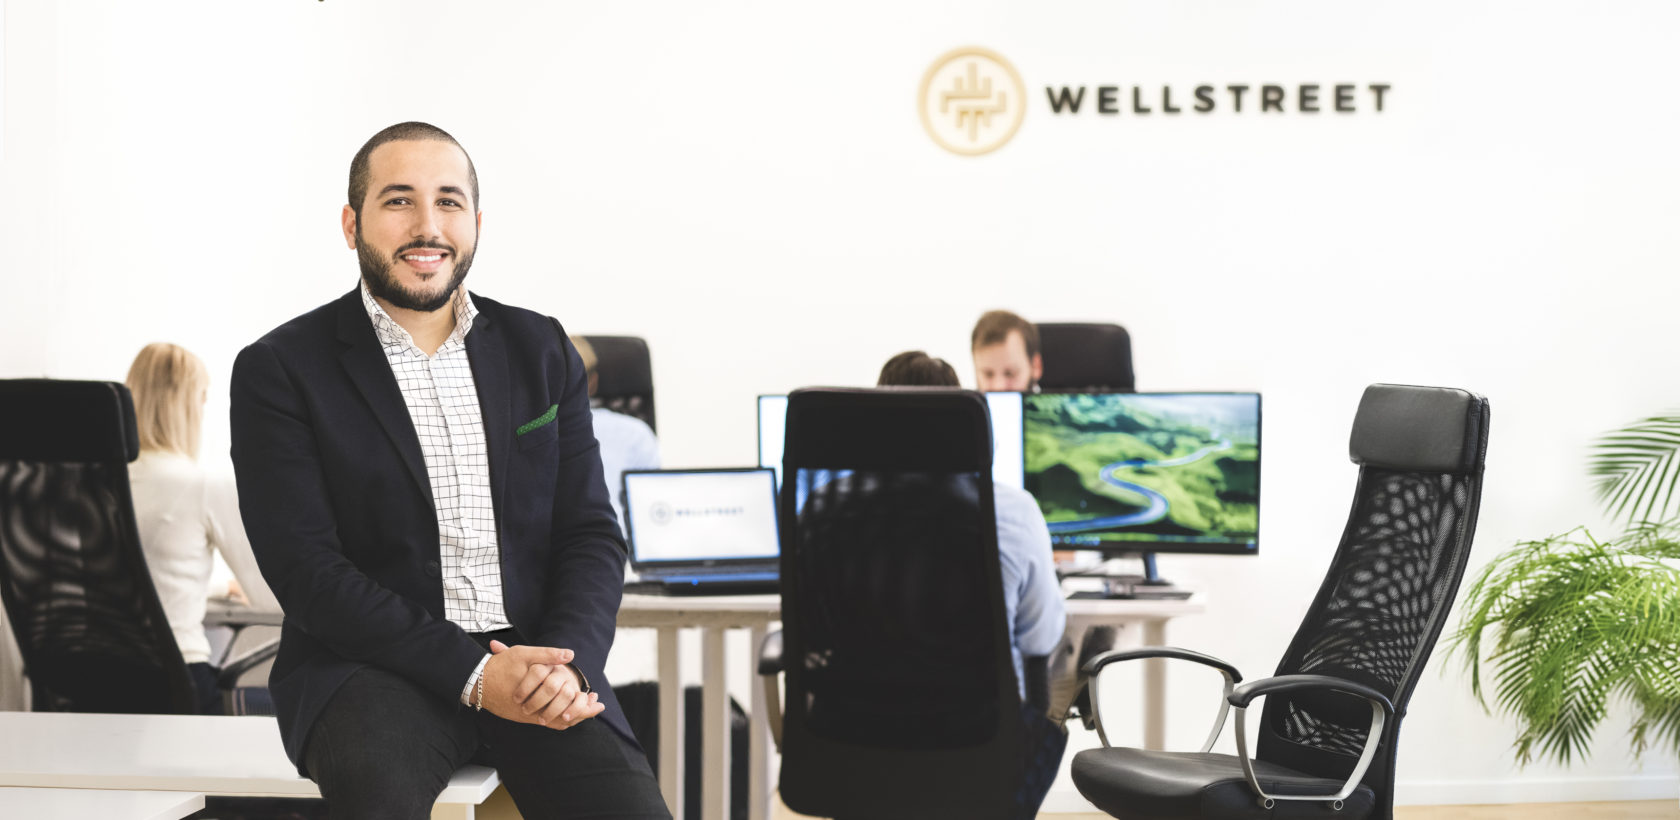 Wellstreet, one of Scandinavia's most active investors in seed and early stage startups, is coming to Lithuania to look around